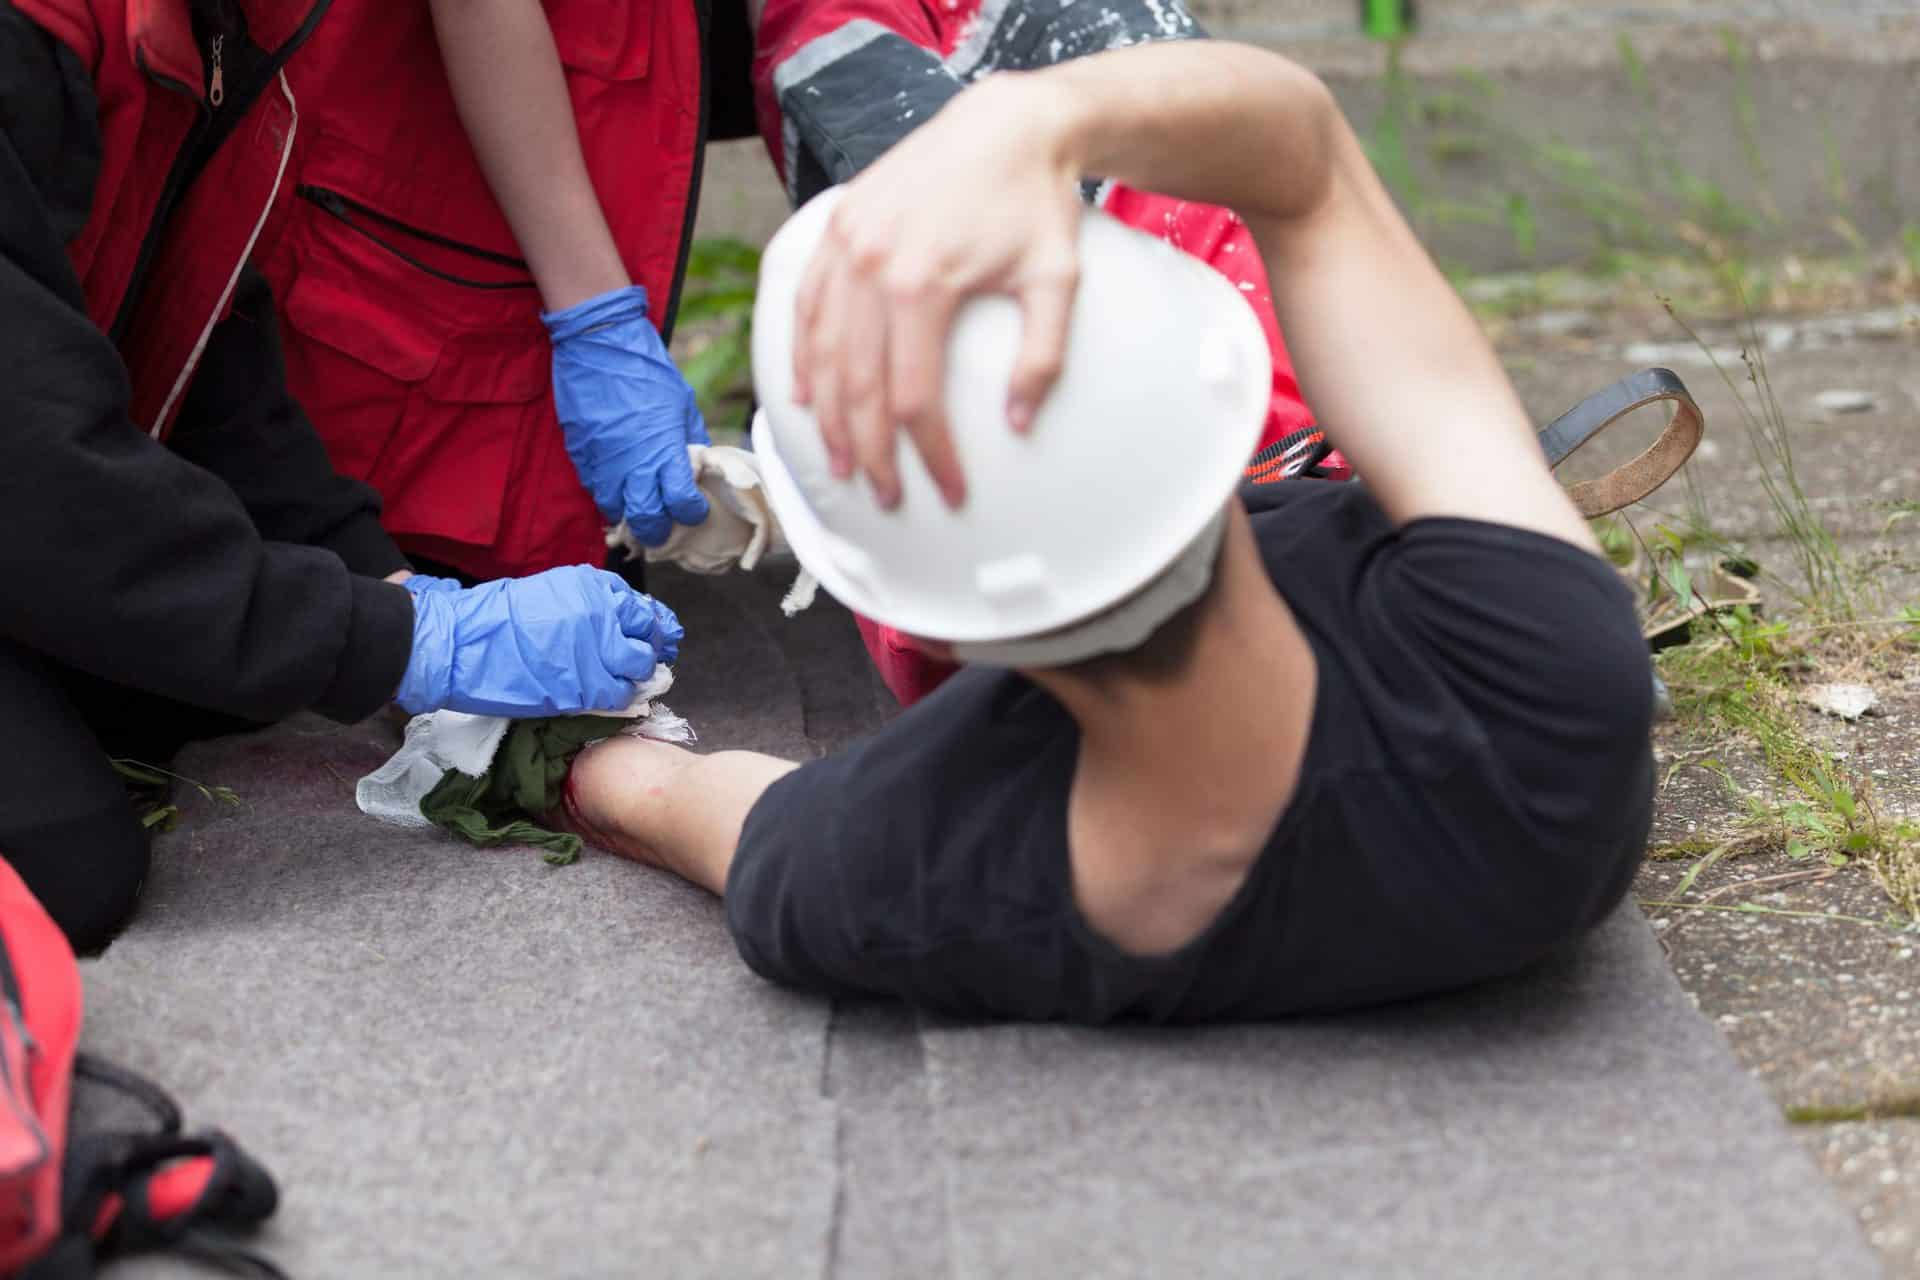 Injured at Work Due to Negligence? What to do Next